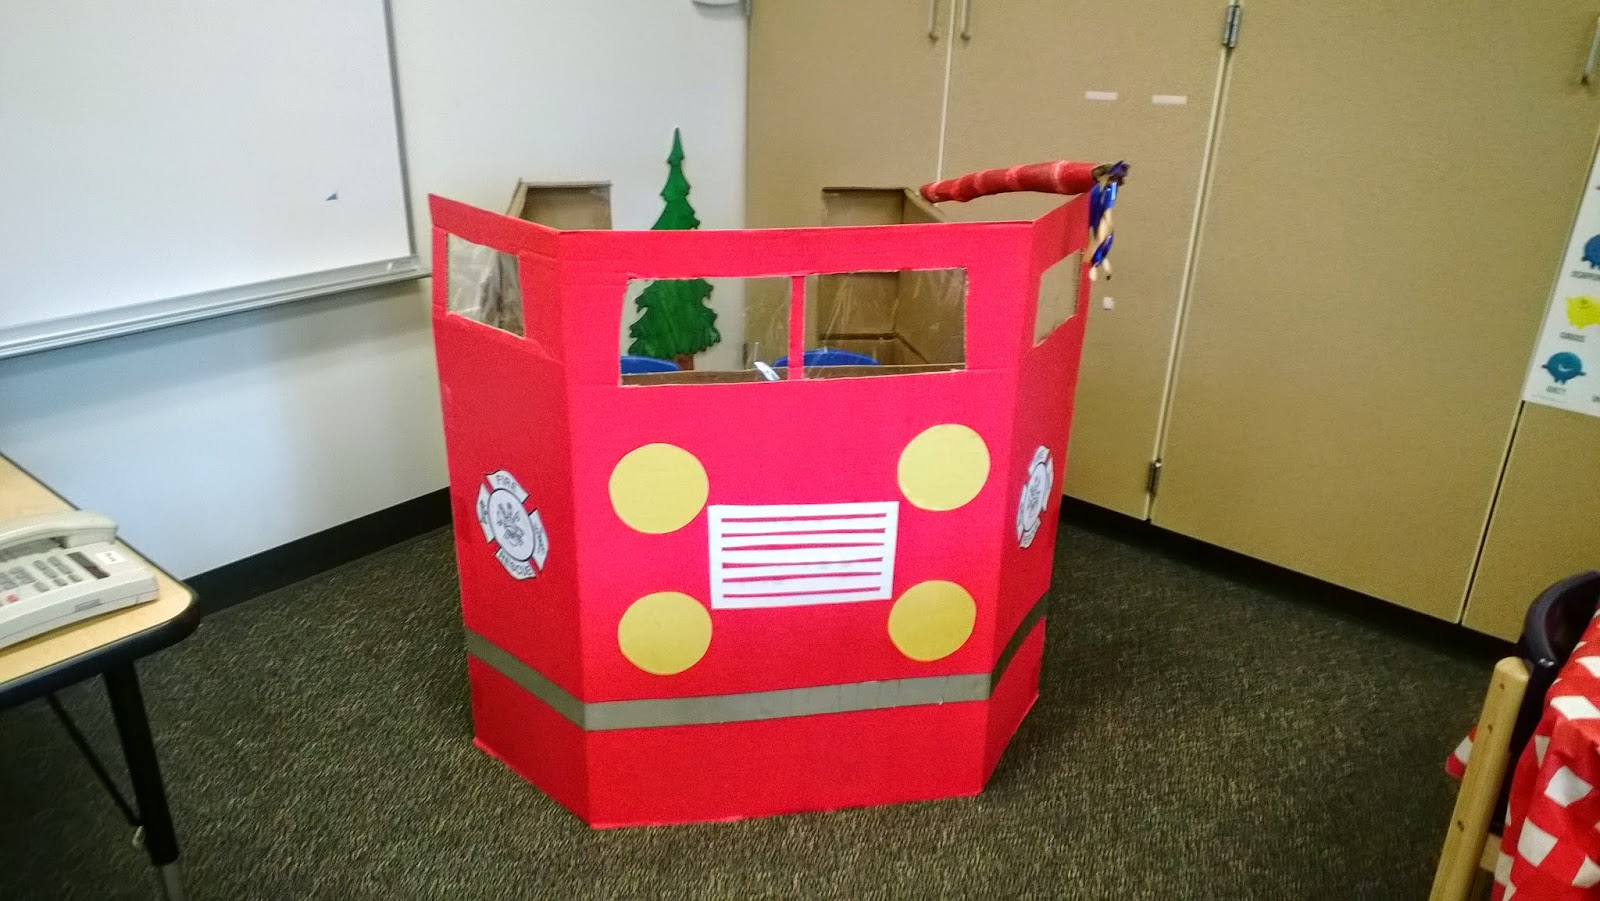 Fire Engine: Made With Red Tri Fold Display Board And A Large Cardboard Box.